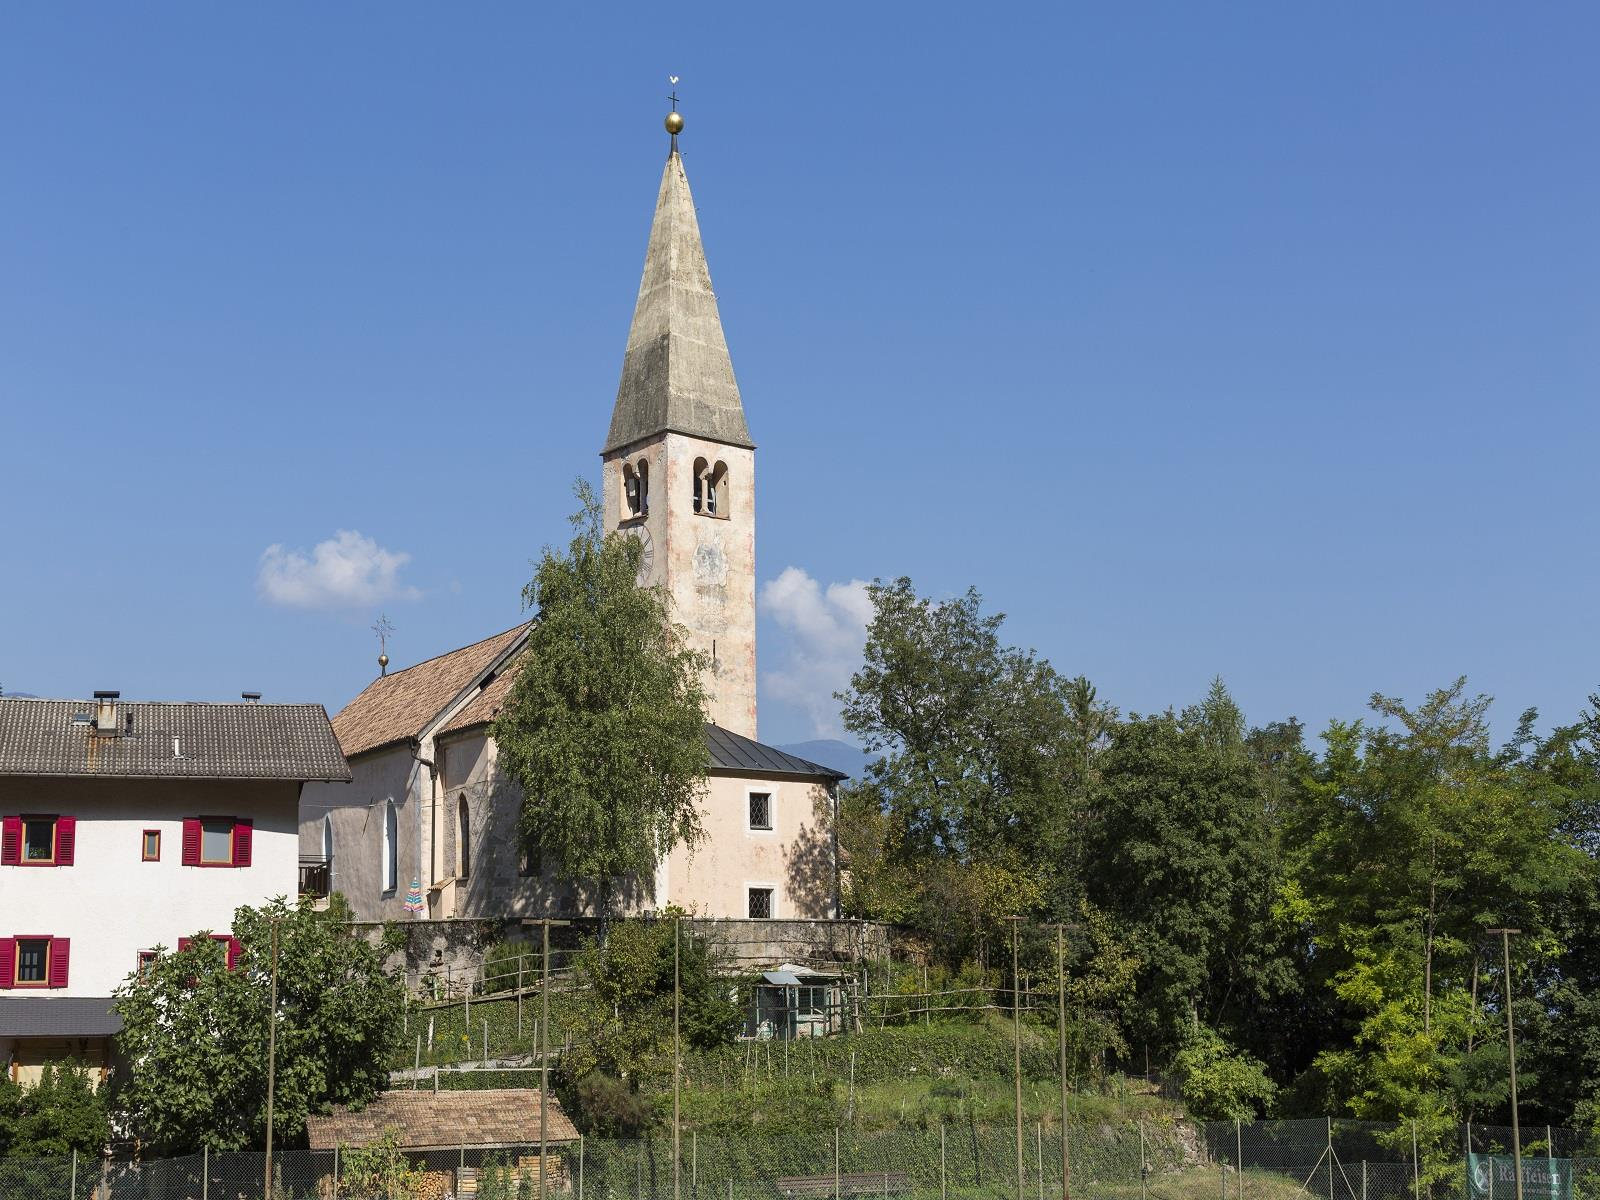 Parish church S. Orsola